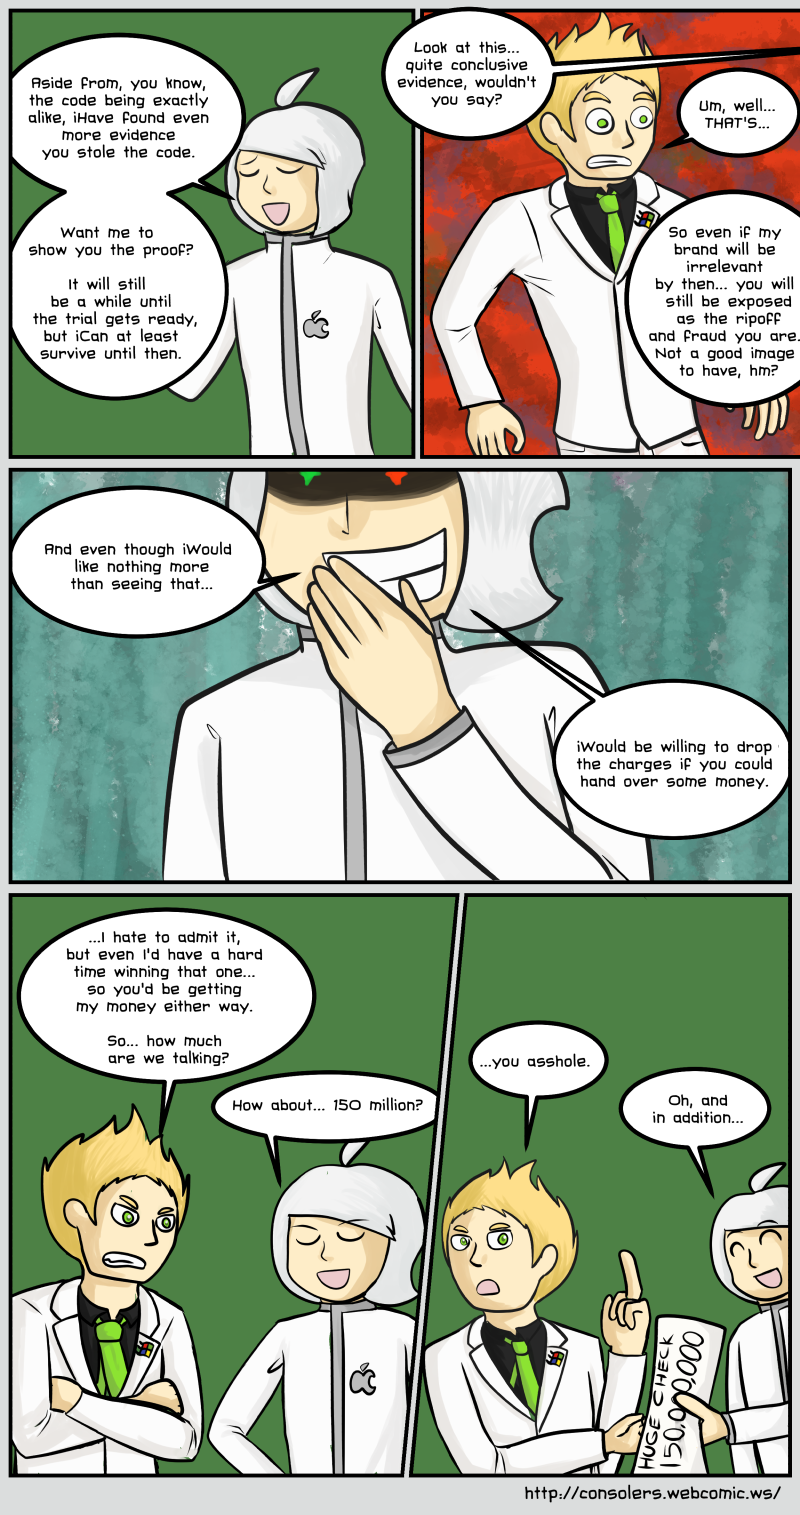 iNeed More Money - page 3